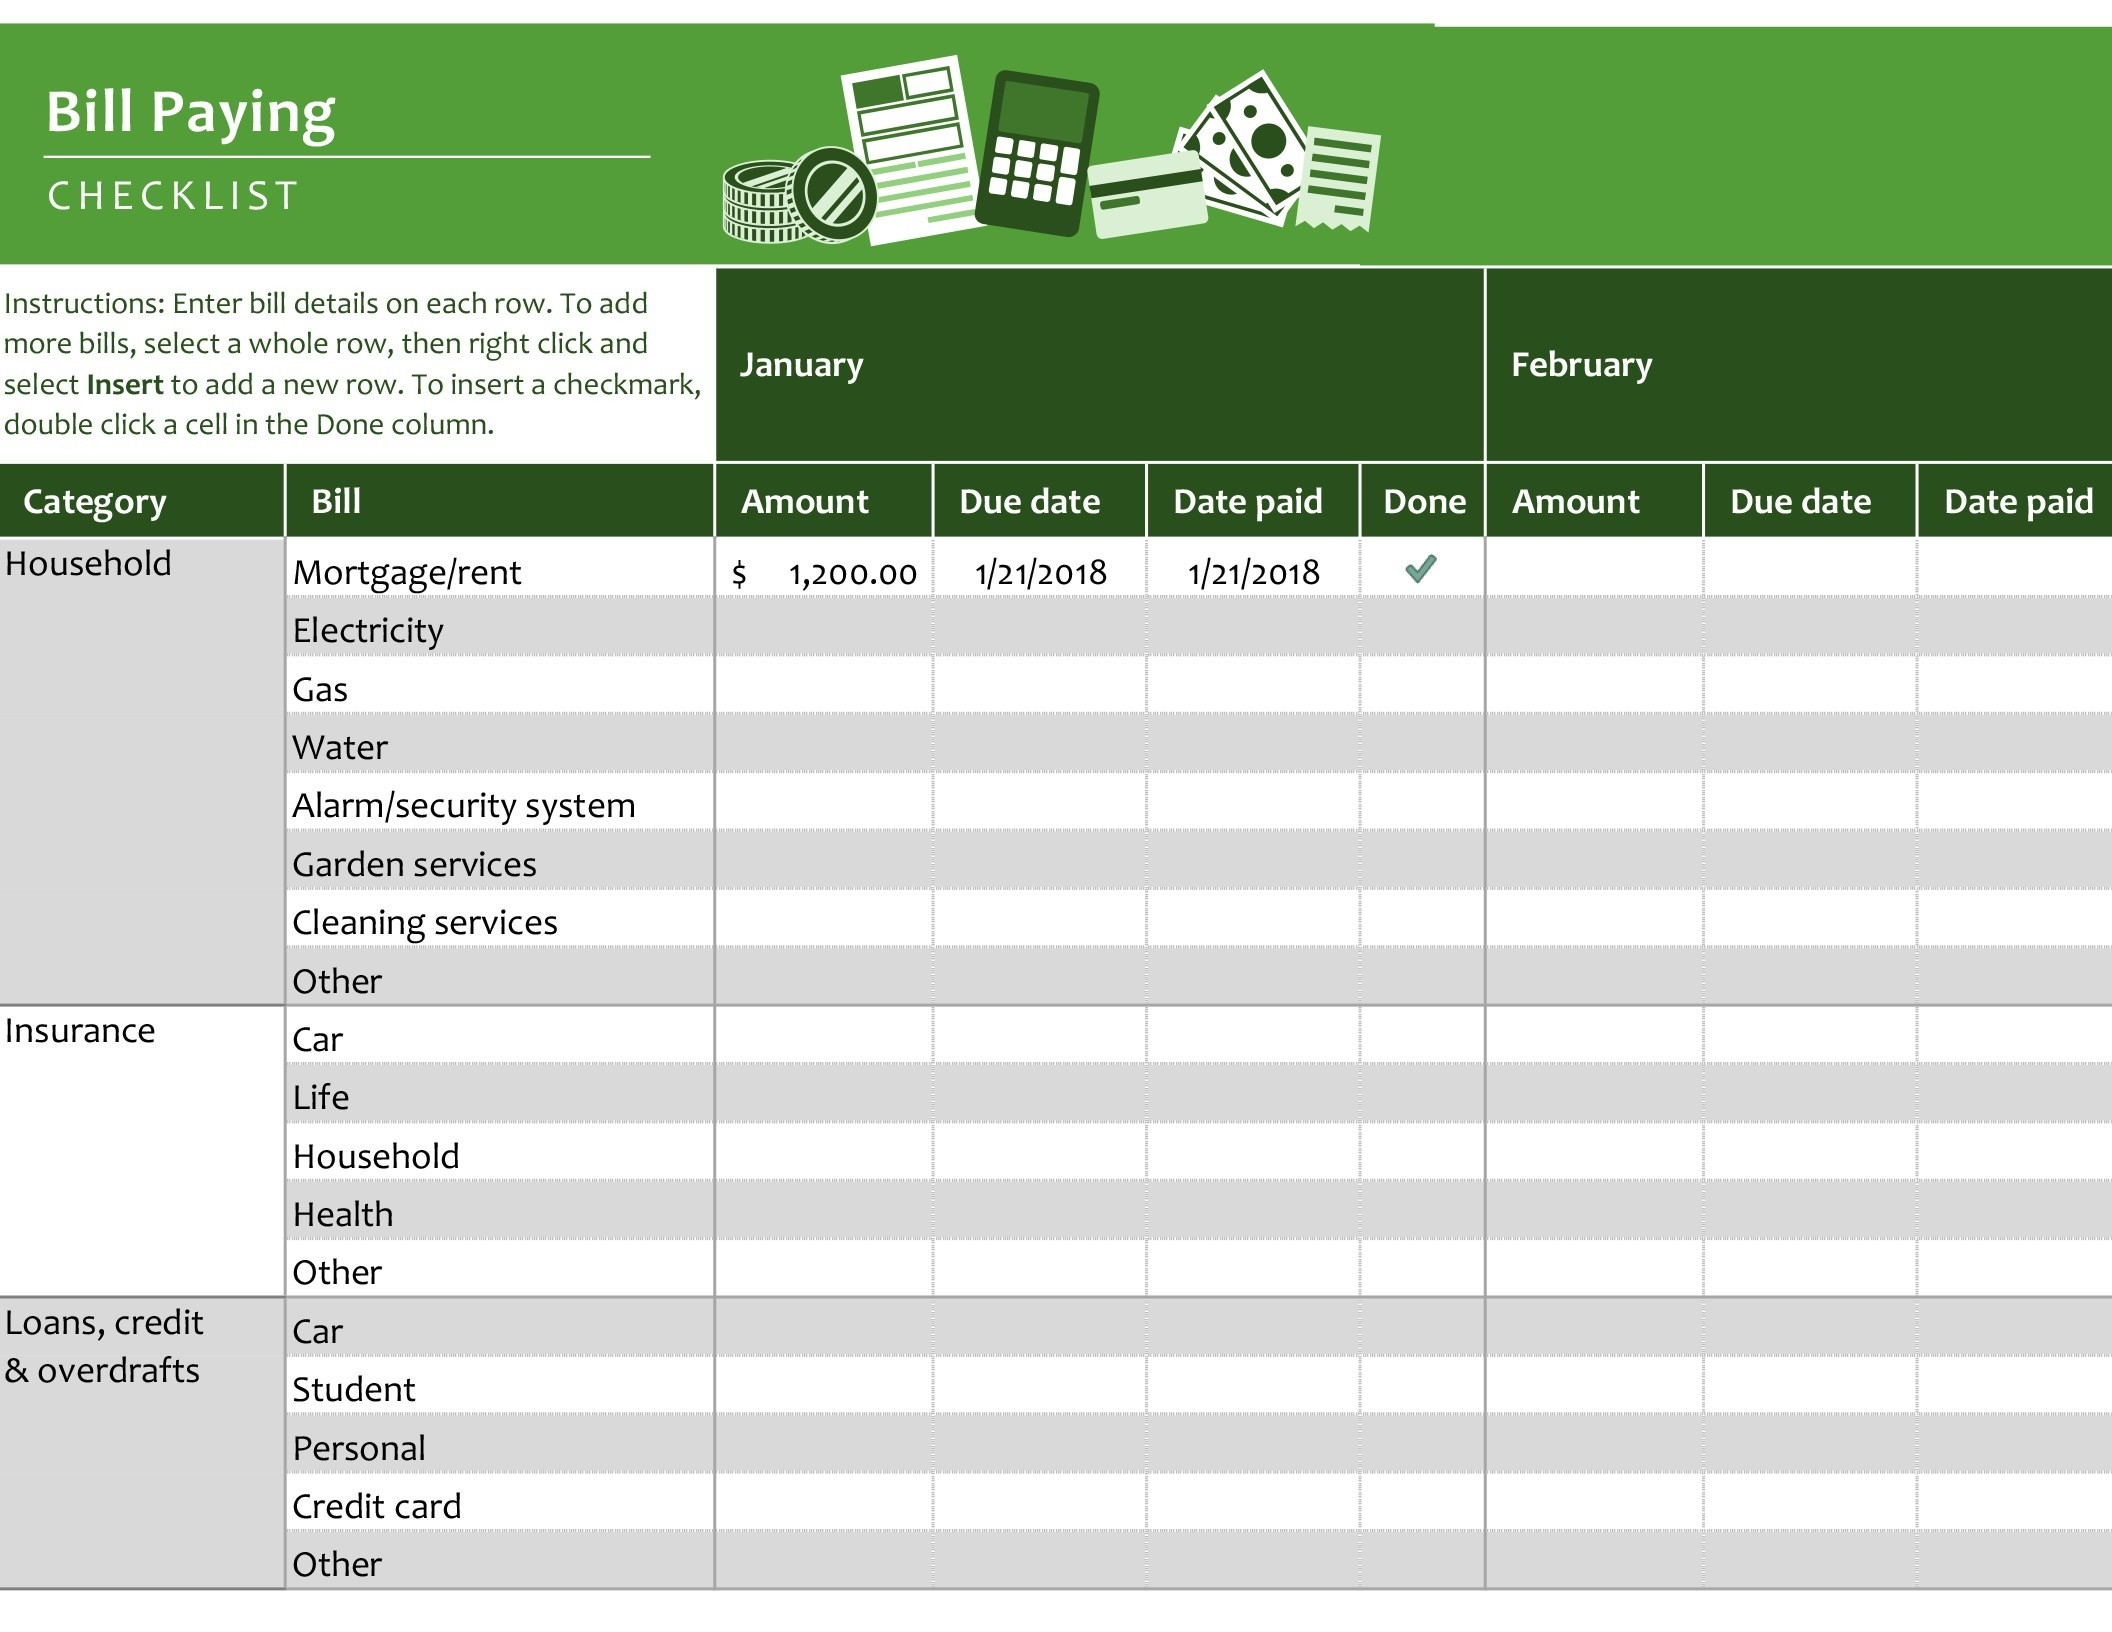 Bill Paying Checklist - Office Templates & Themes - Office 365-Bill Pay Calendar Template